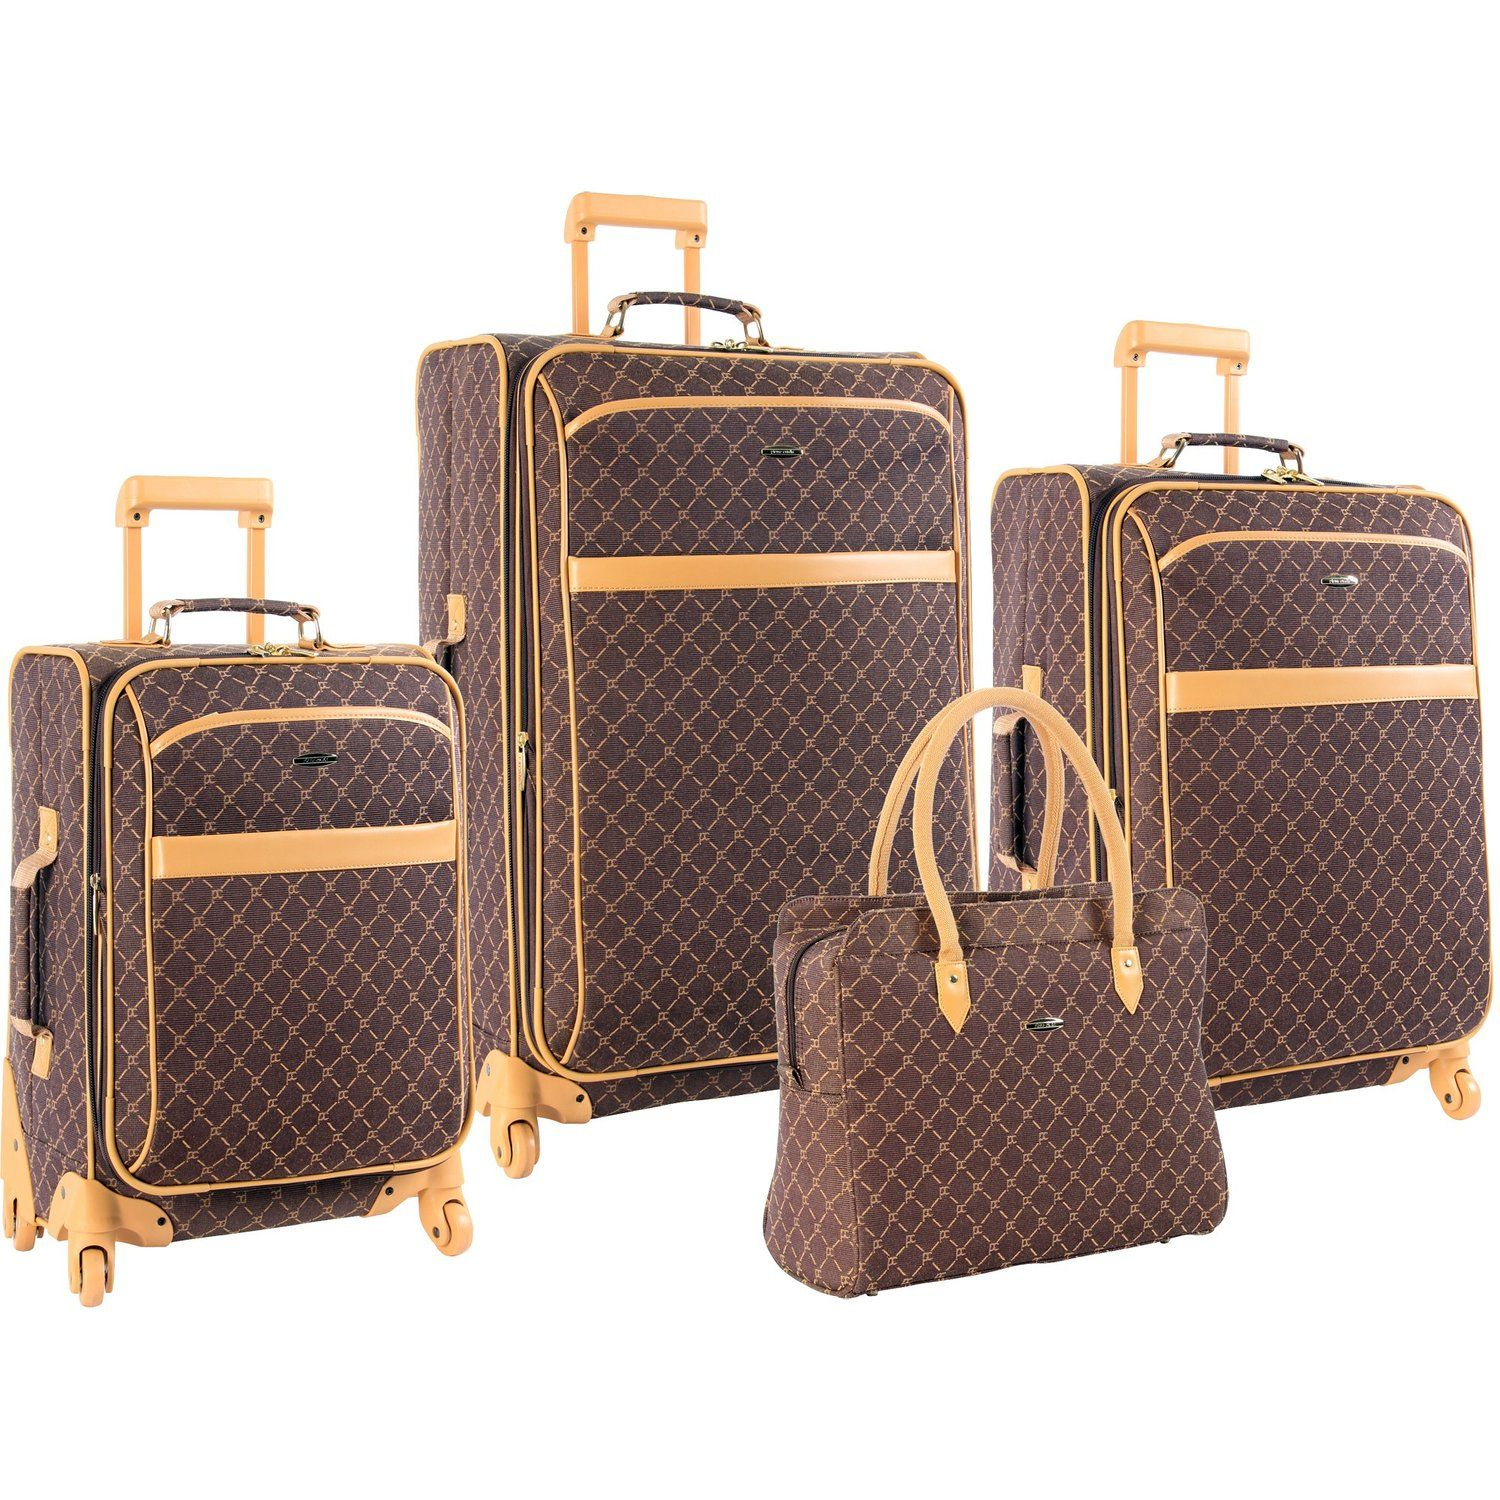 Designer Luggage Sets For Men